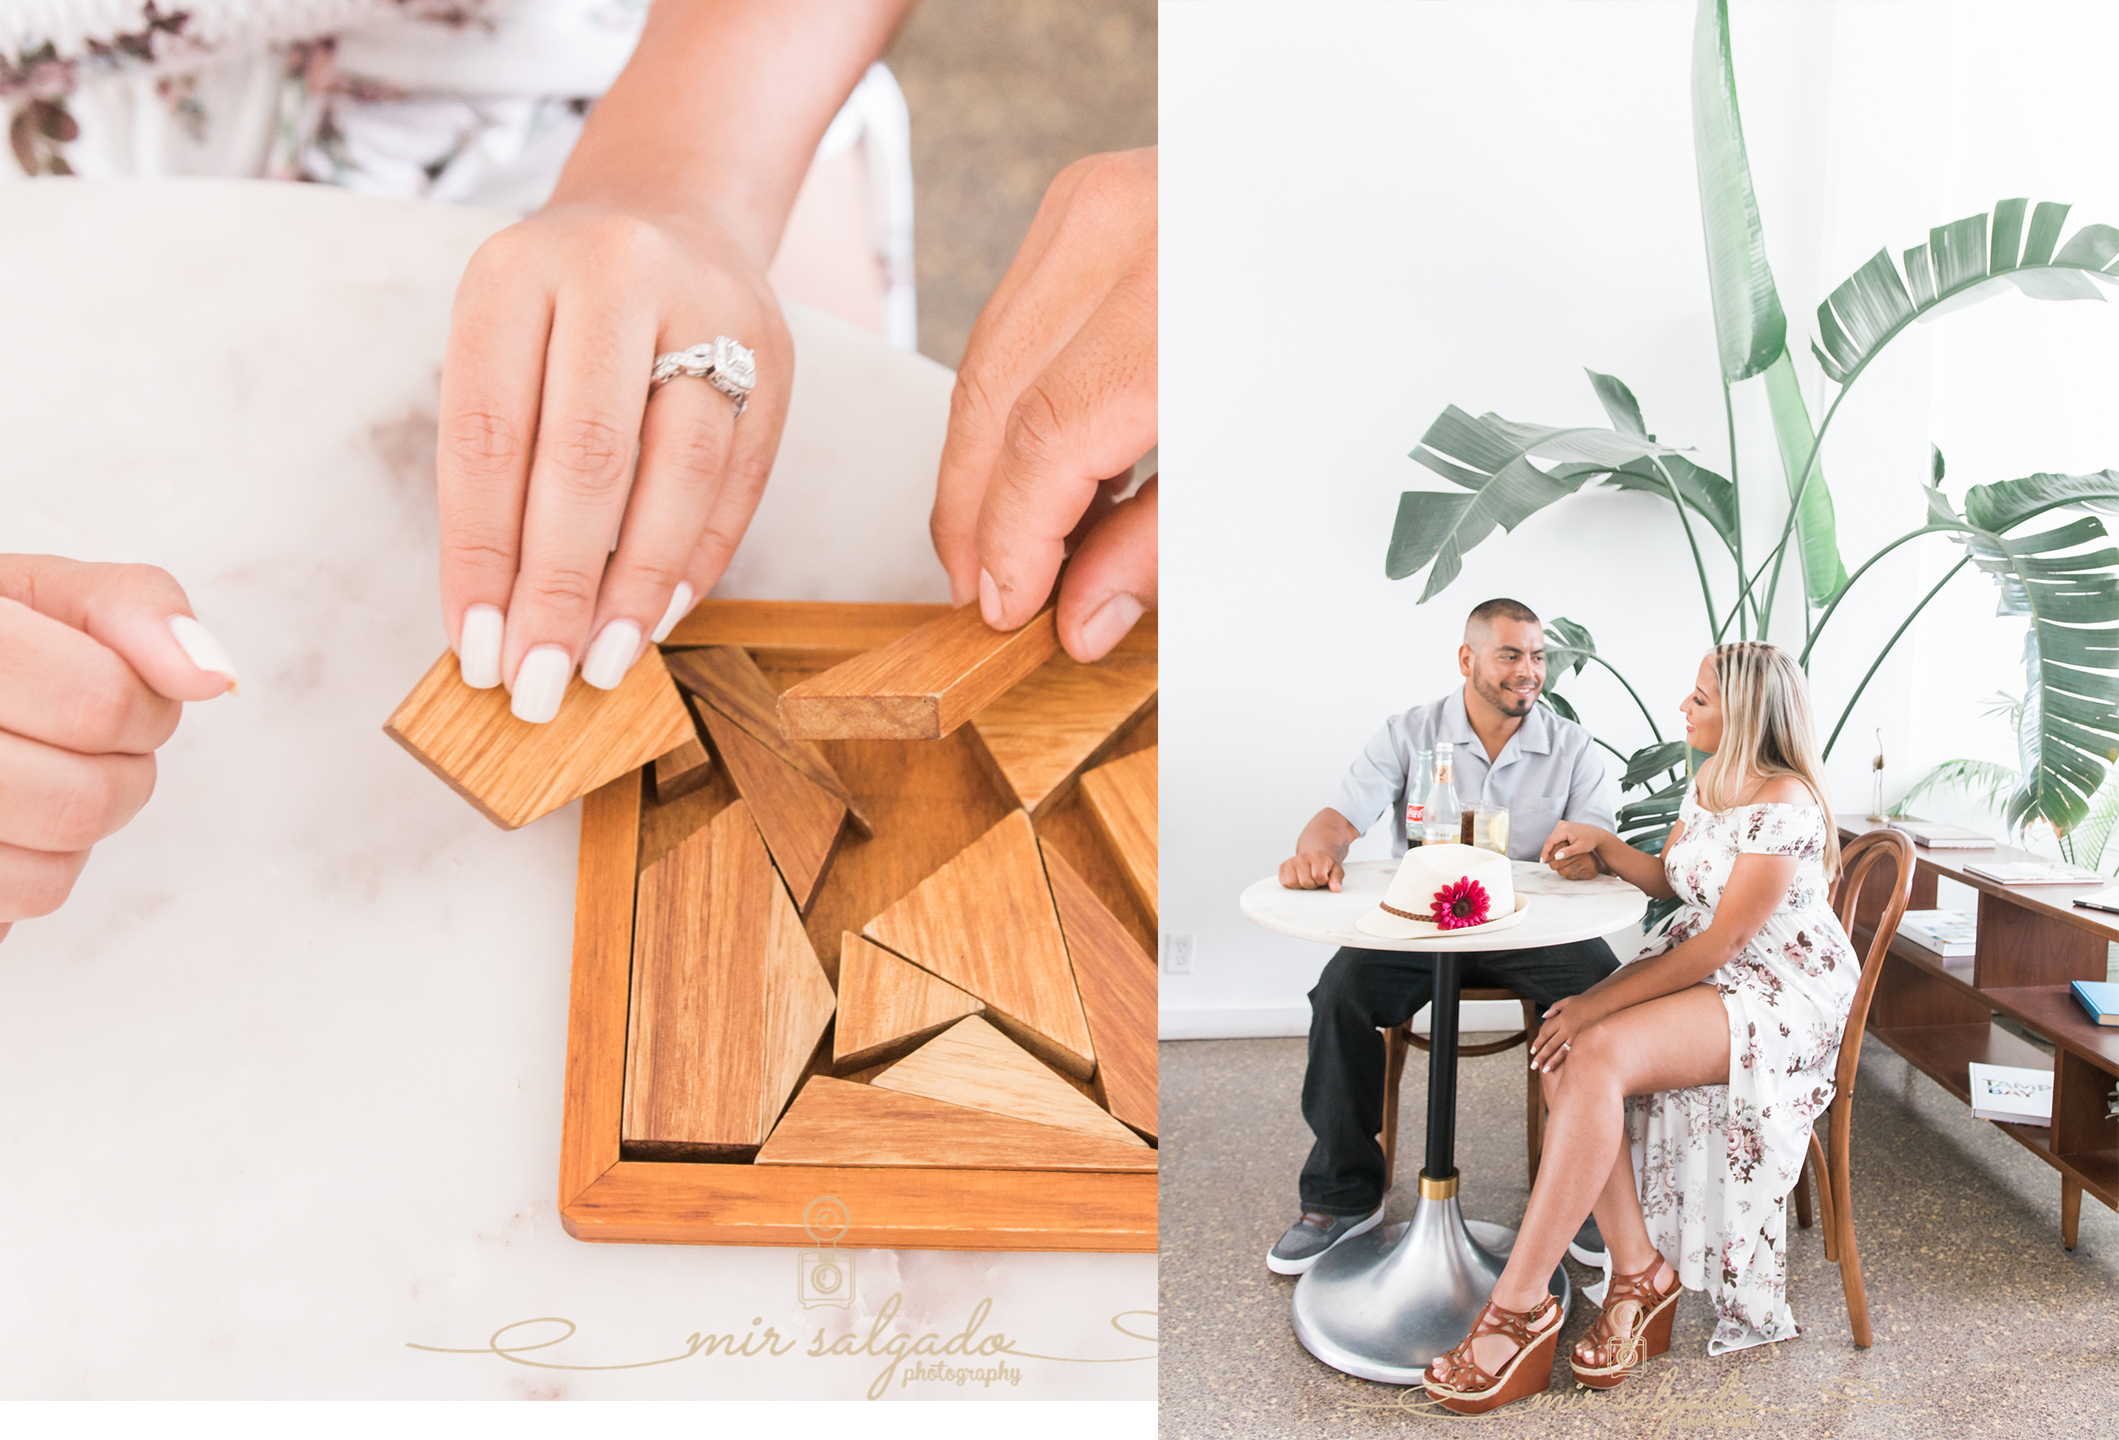 miriam-photography-tampa-st-pete-engagement-session-puzzle-time-drinking-hand-holding